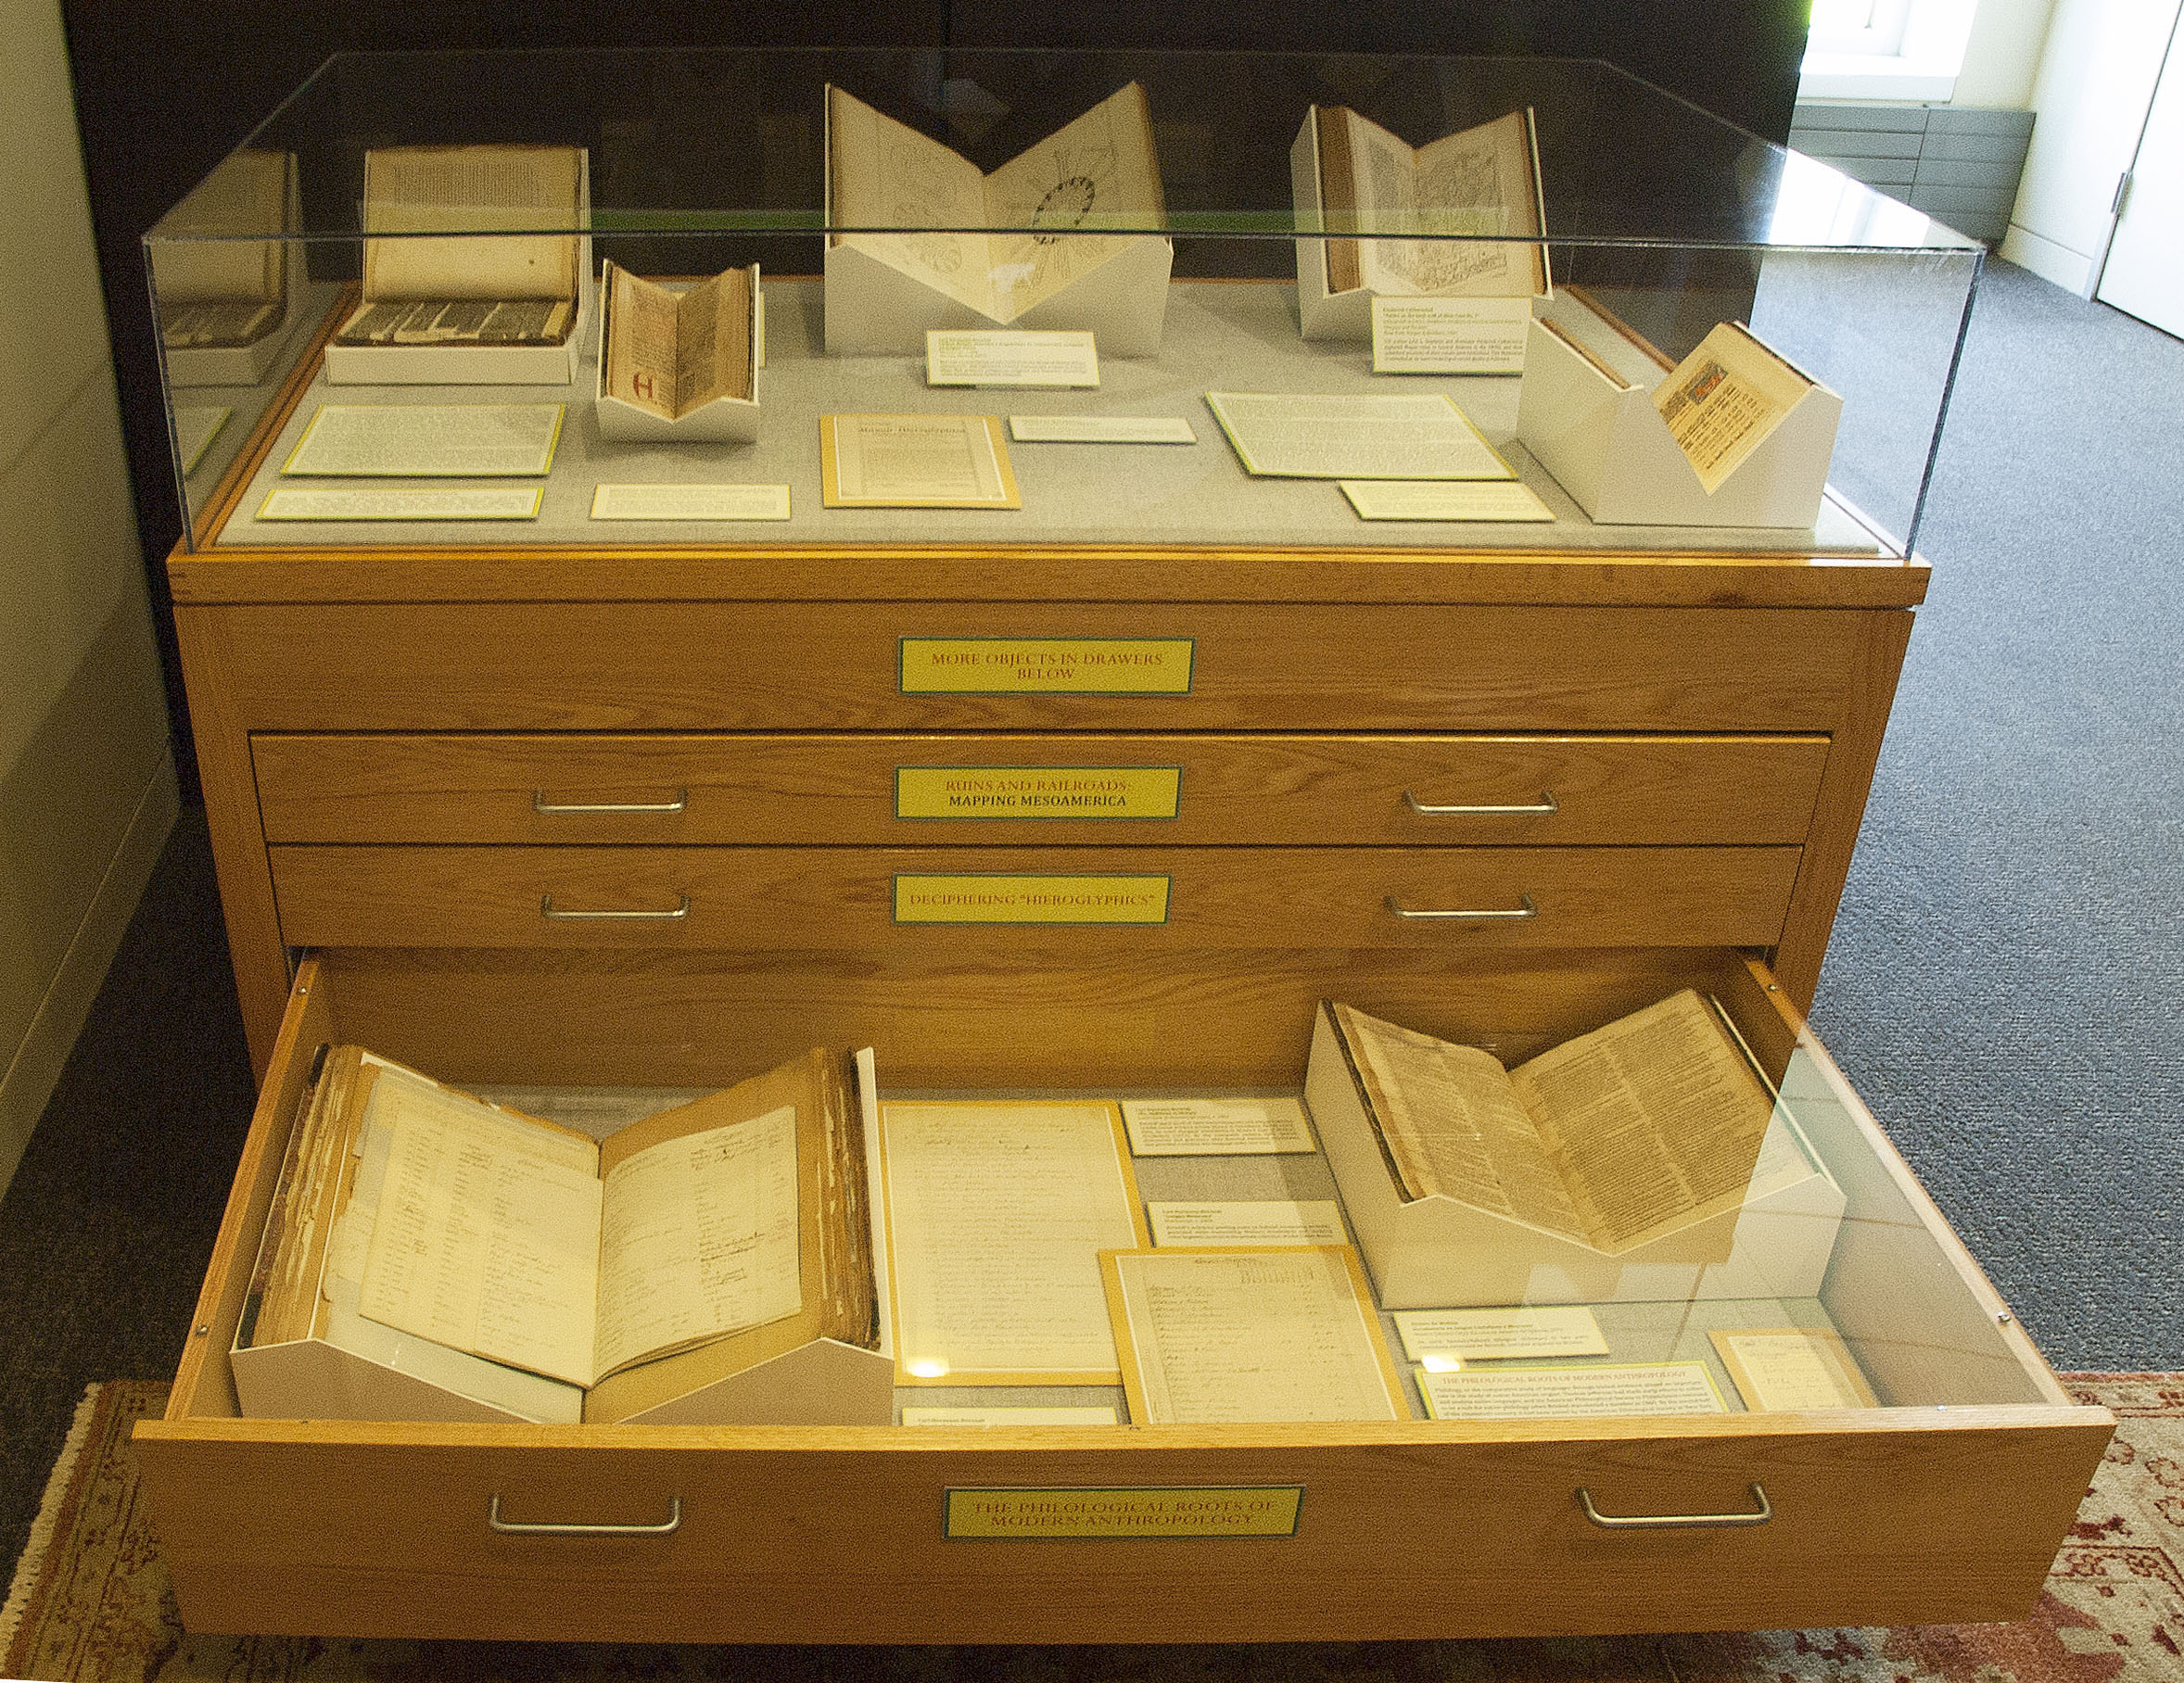 Drawer 3 - The Philological Roots of Modern Anthropology